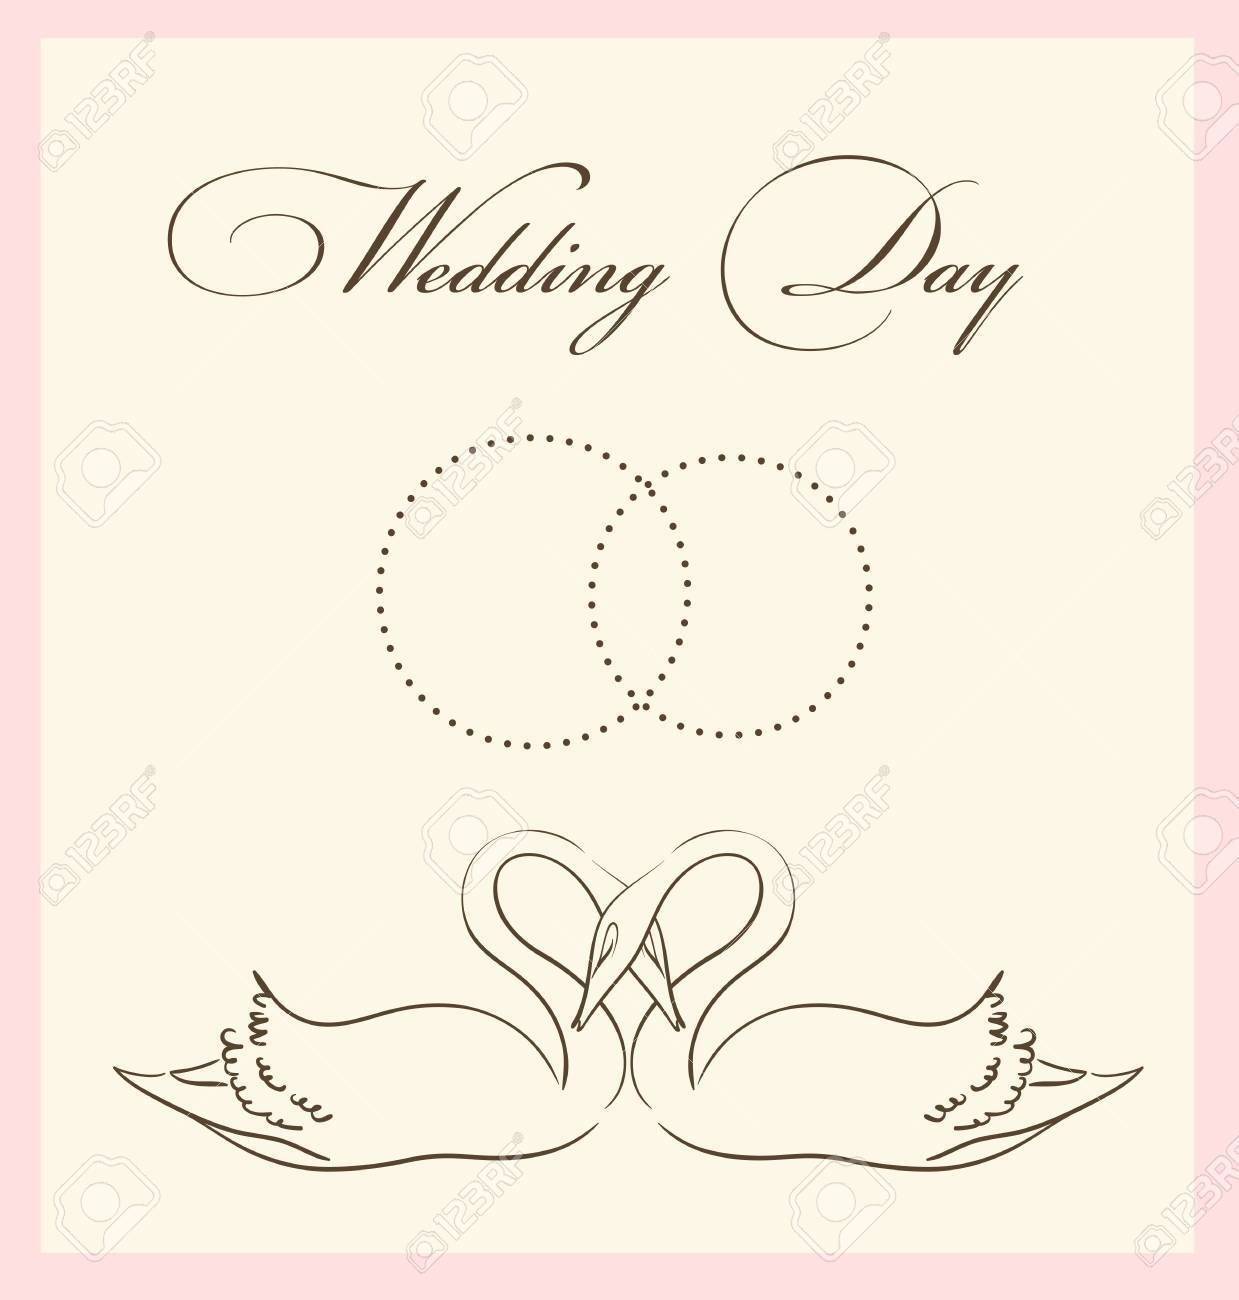 Wedding Card Template Royalty Free Cliparts Vectors And – Wedding Card Template